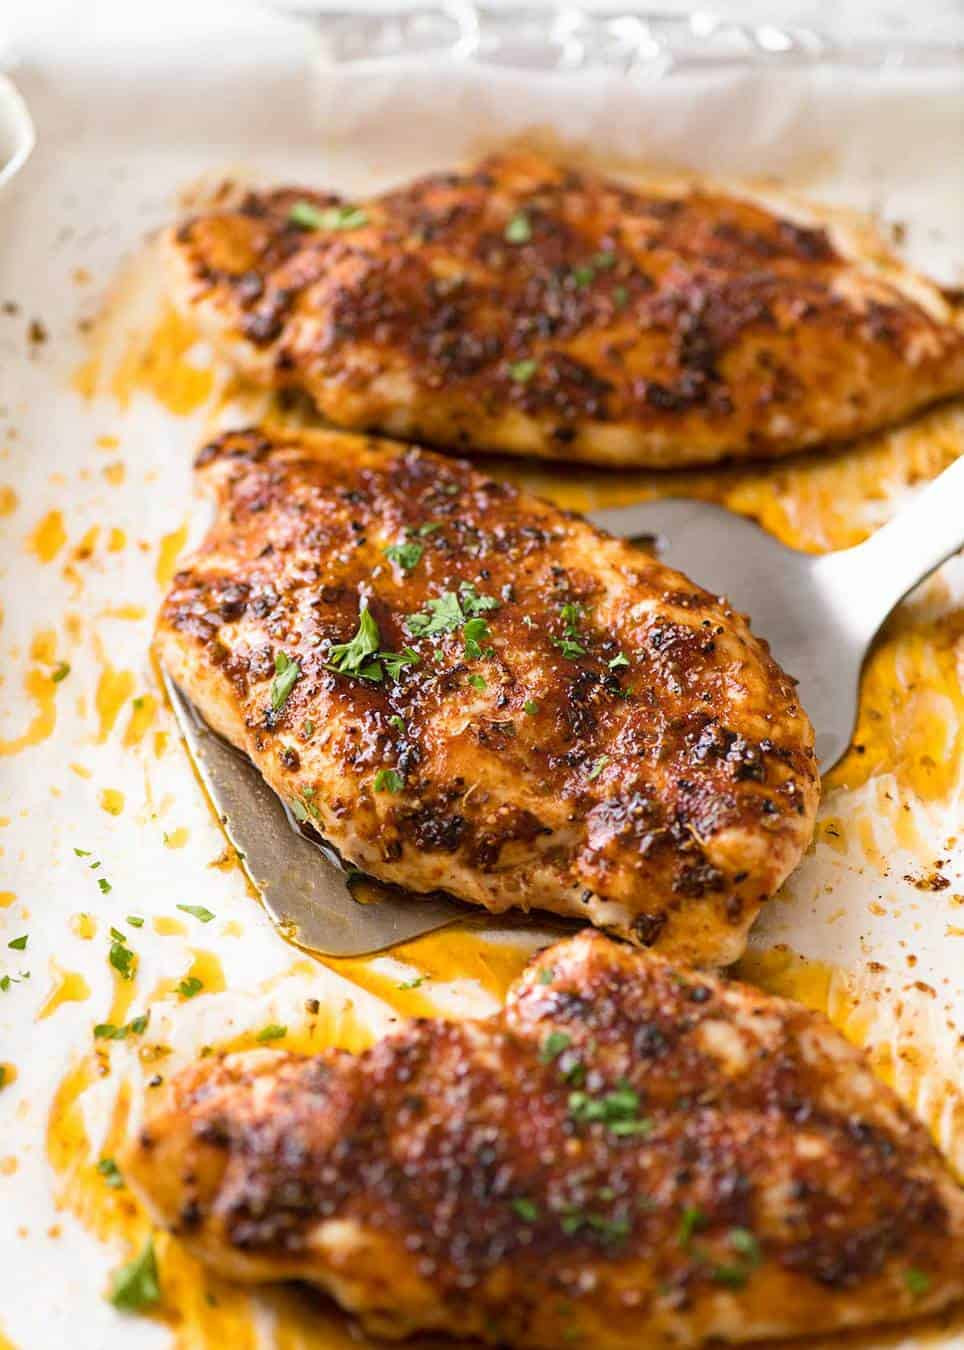 How To Bake Chicken Breasts In The Oven  Oven Baked Chicken Breast